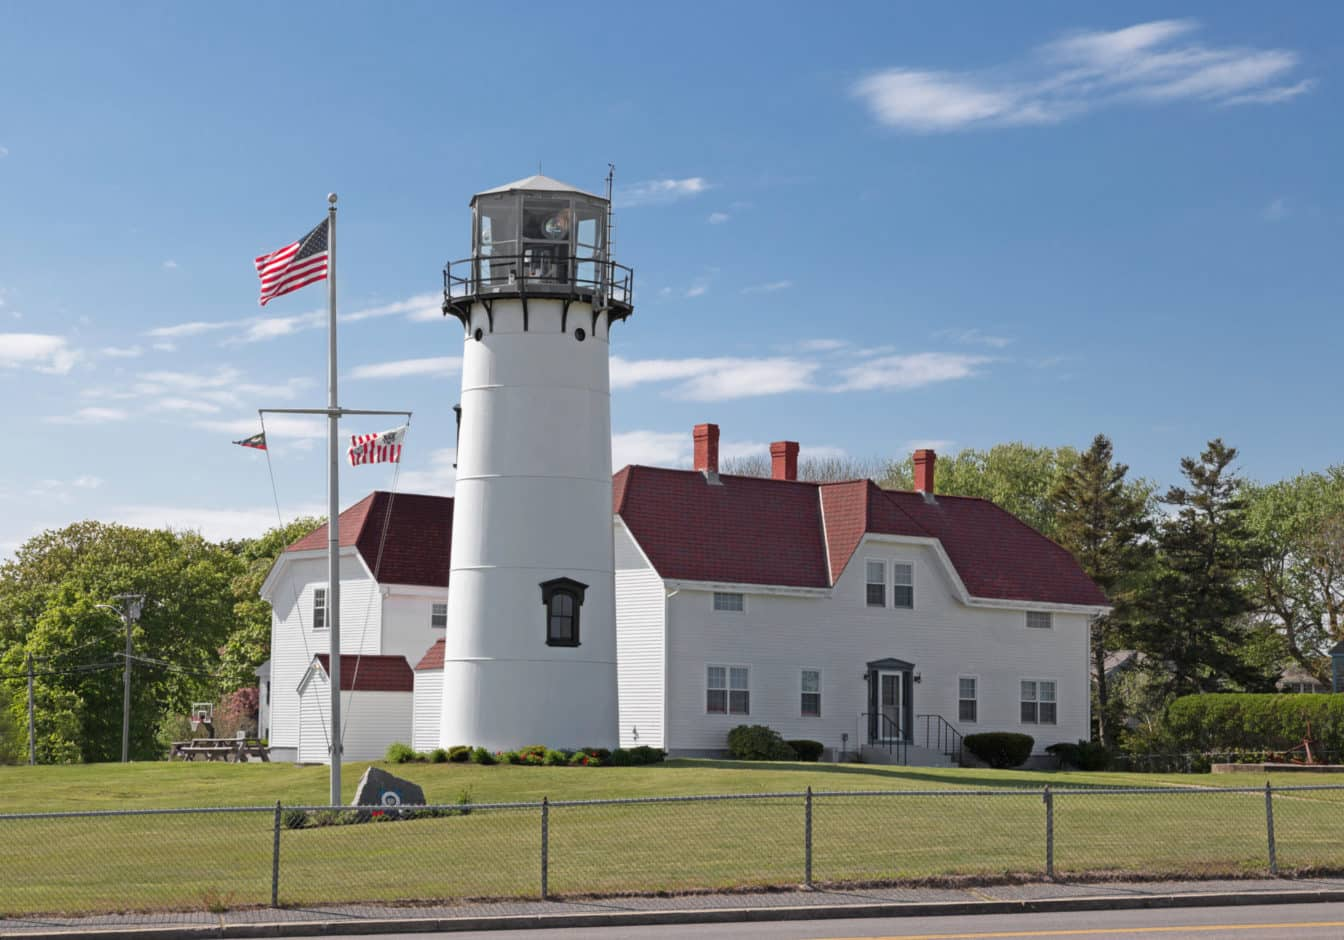 Vacation Attractions And Things To Do In Chatham Ma On Cape Cod